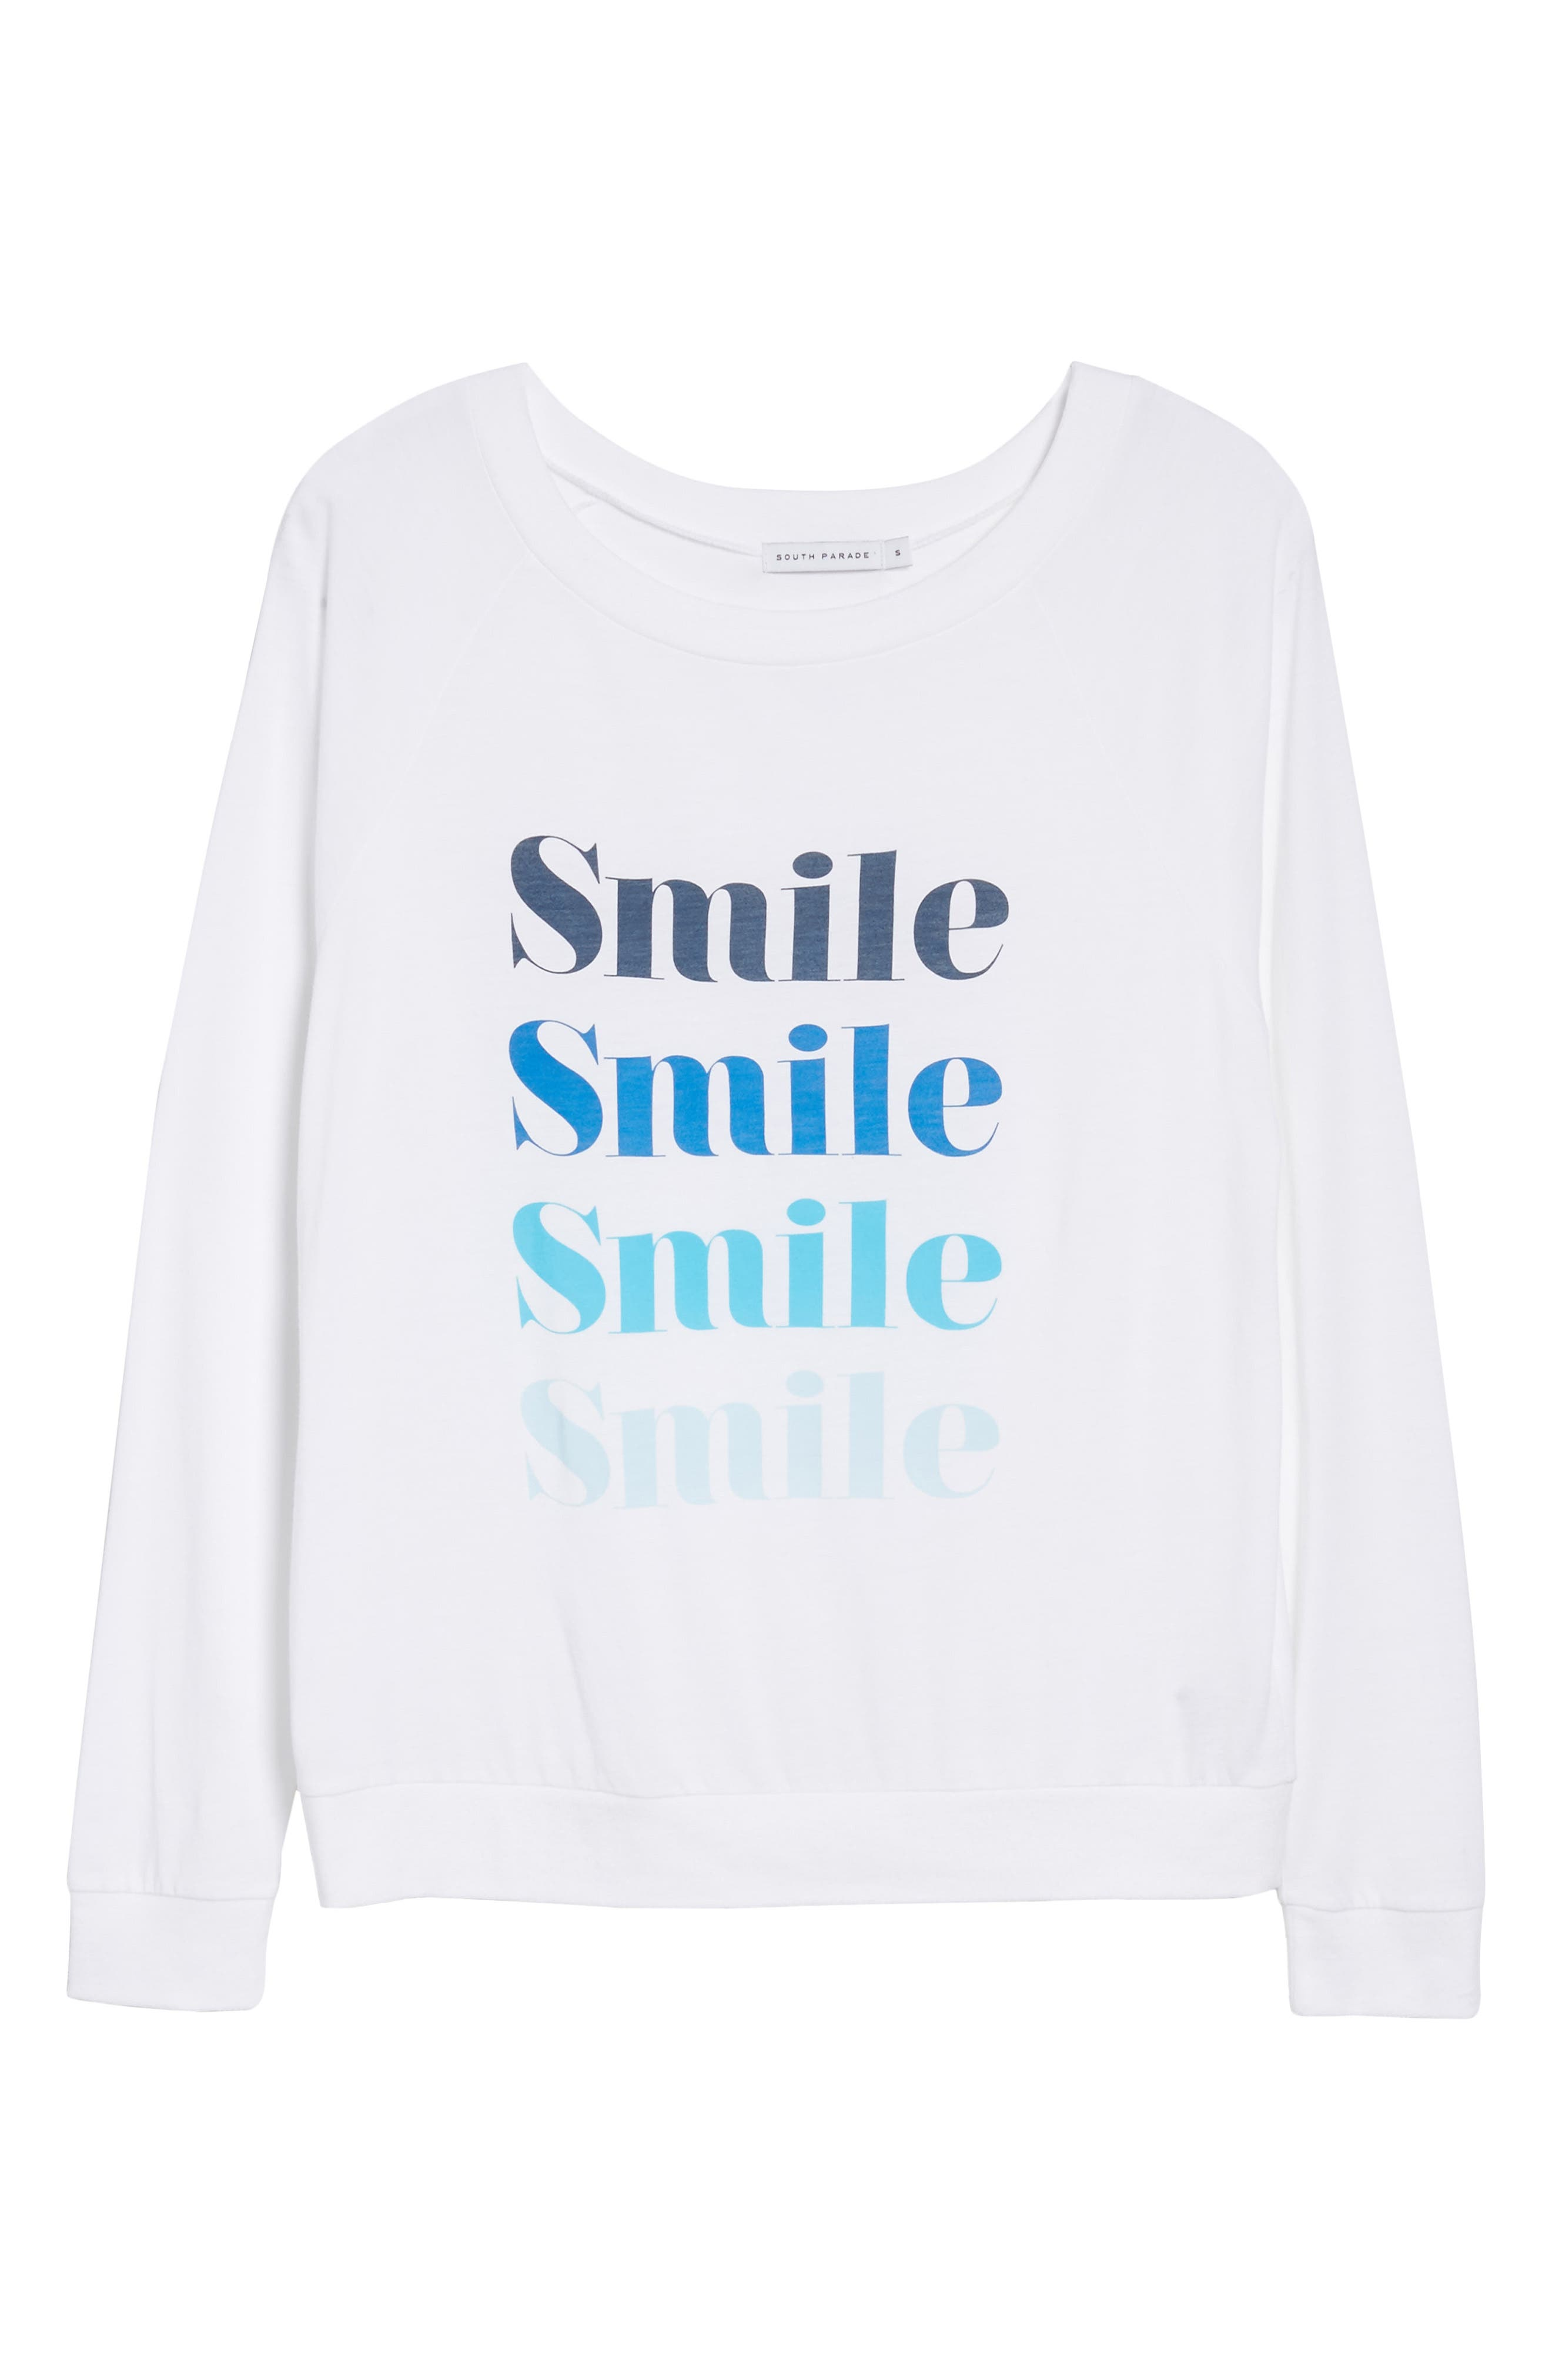 Candy - Smile Smile Pullover,                             Alternate thumbnail 6, color,                             White